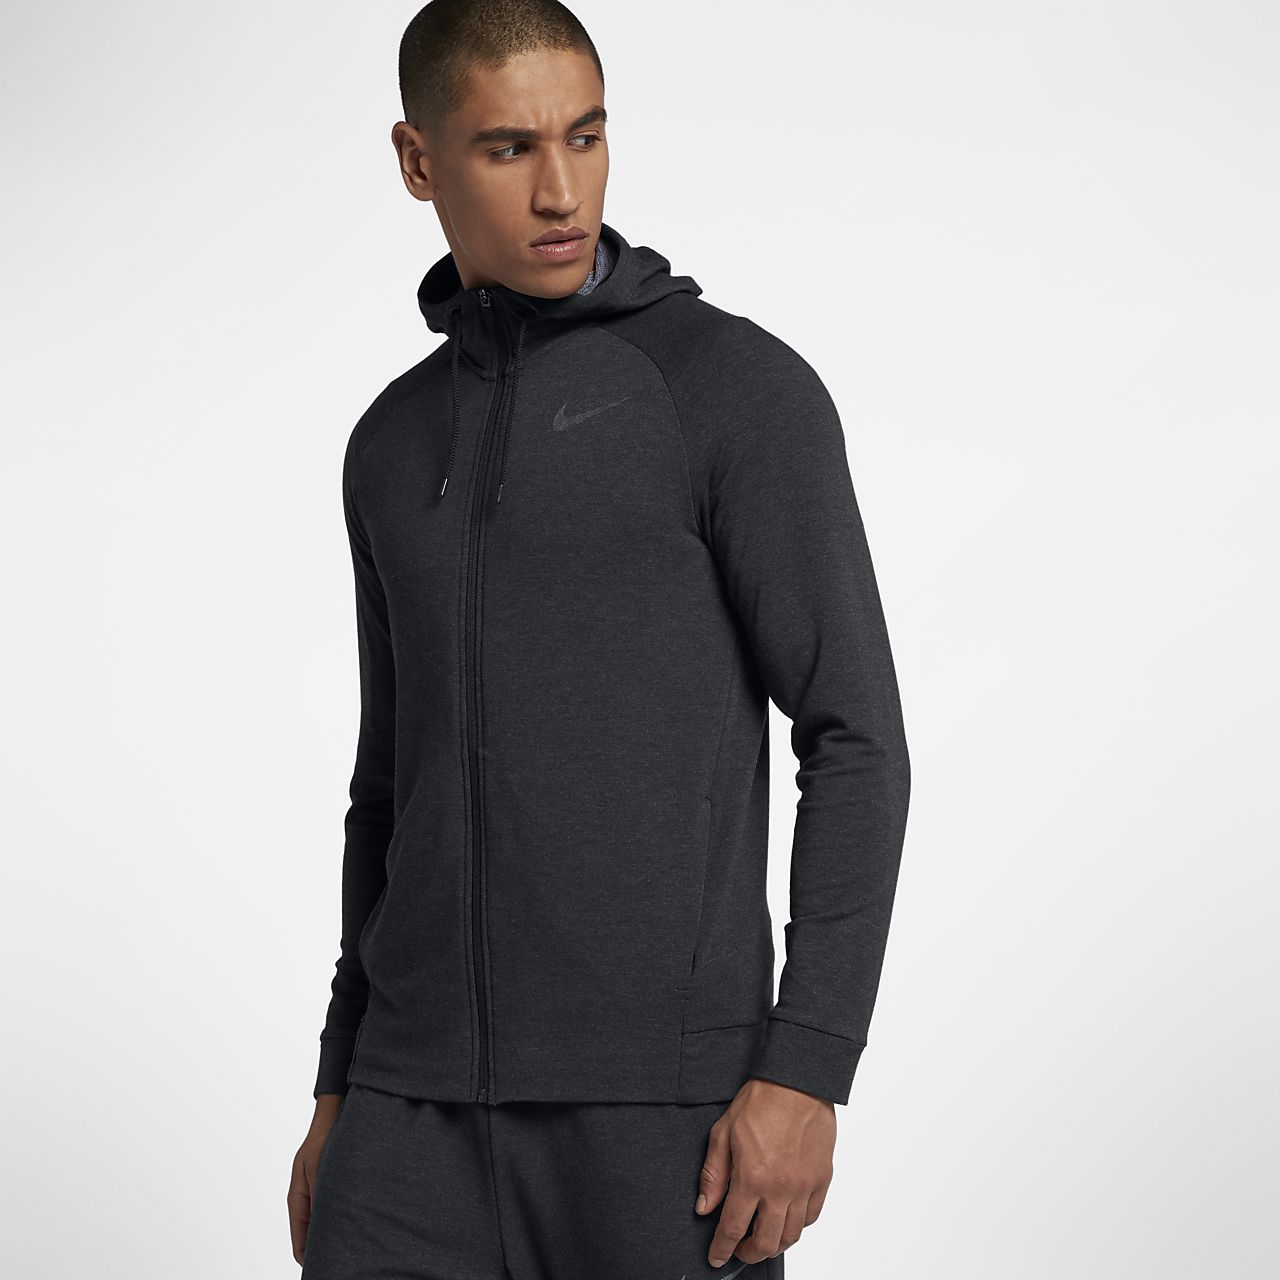 dc6bd78a81b1 Nike Dri-FIT Men s Full-Zip Training Hoodie. Nike.com CA